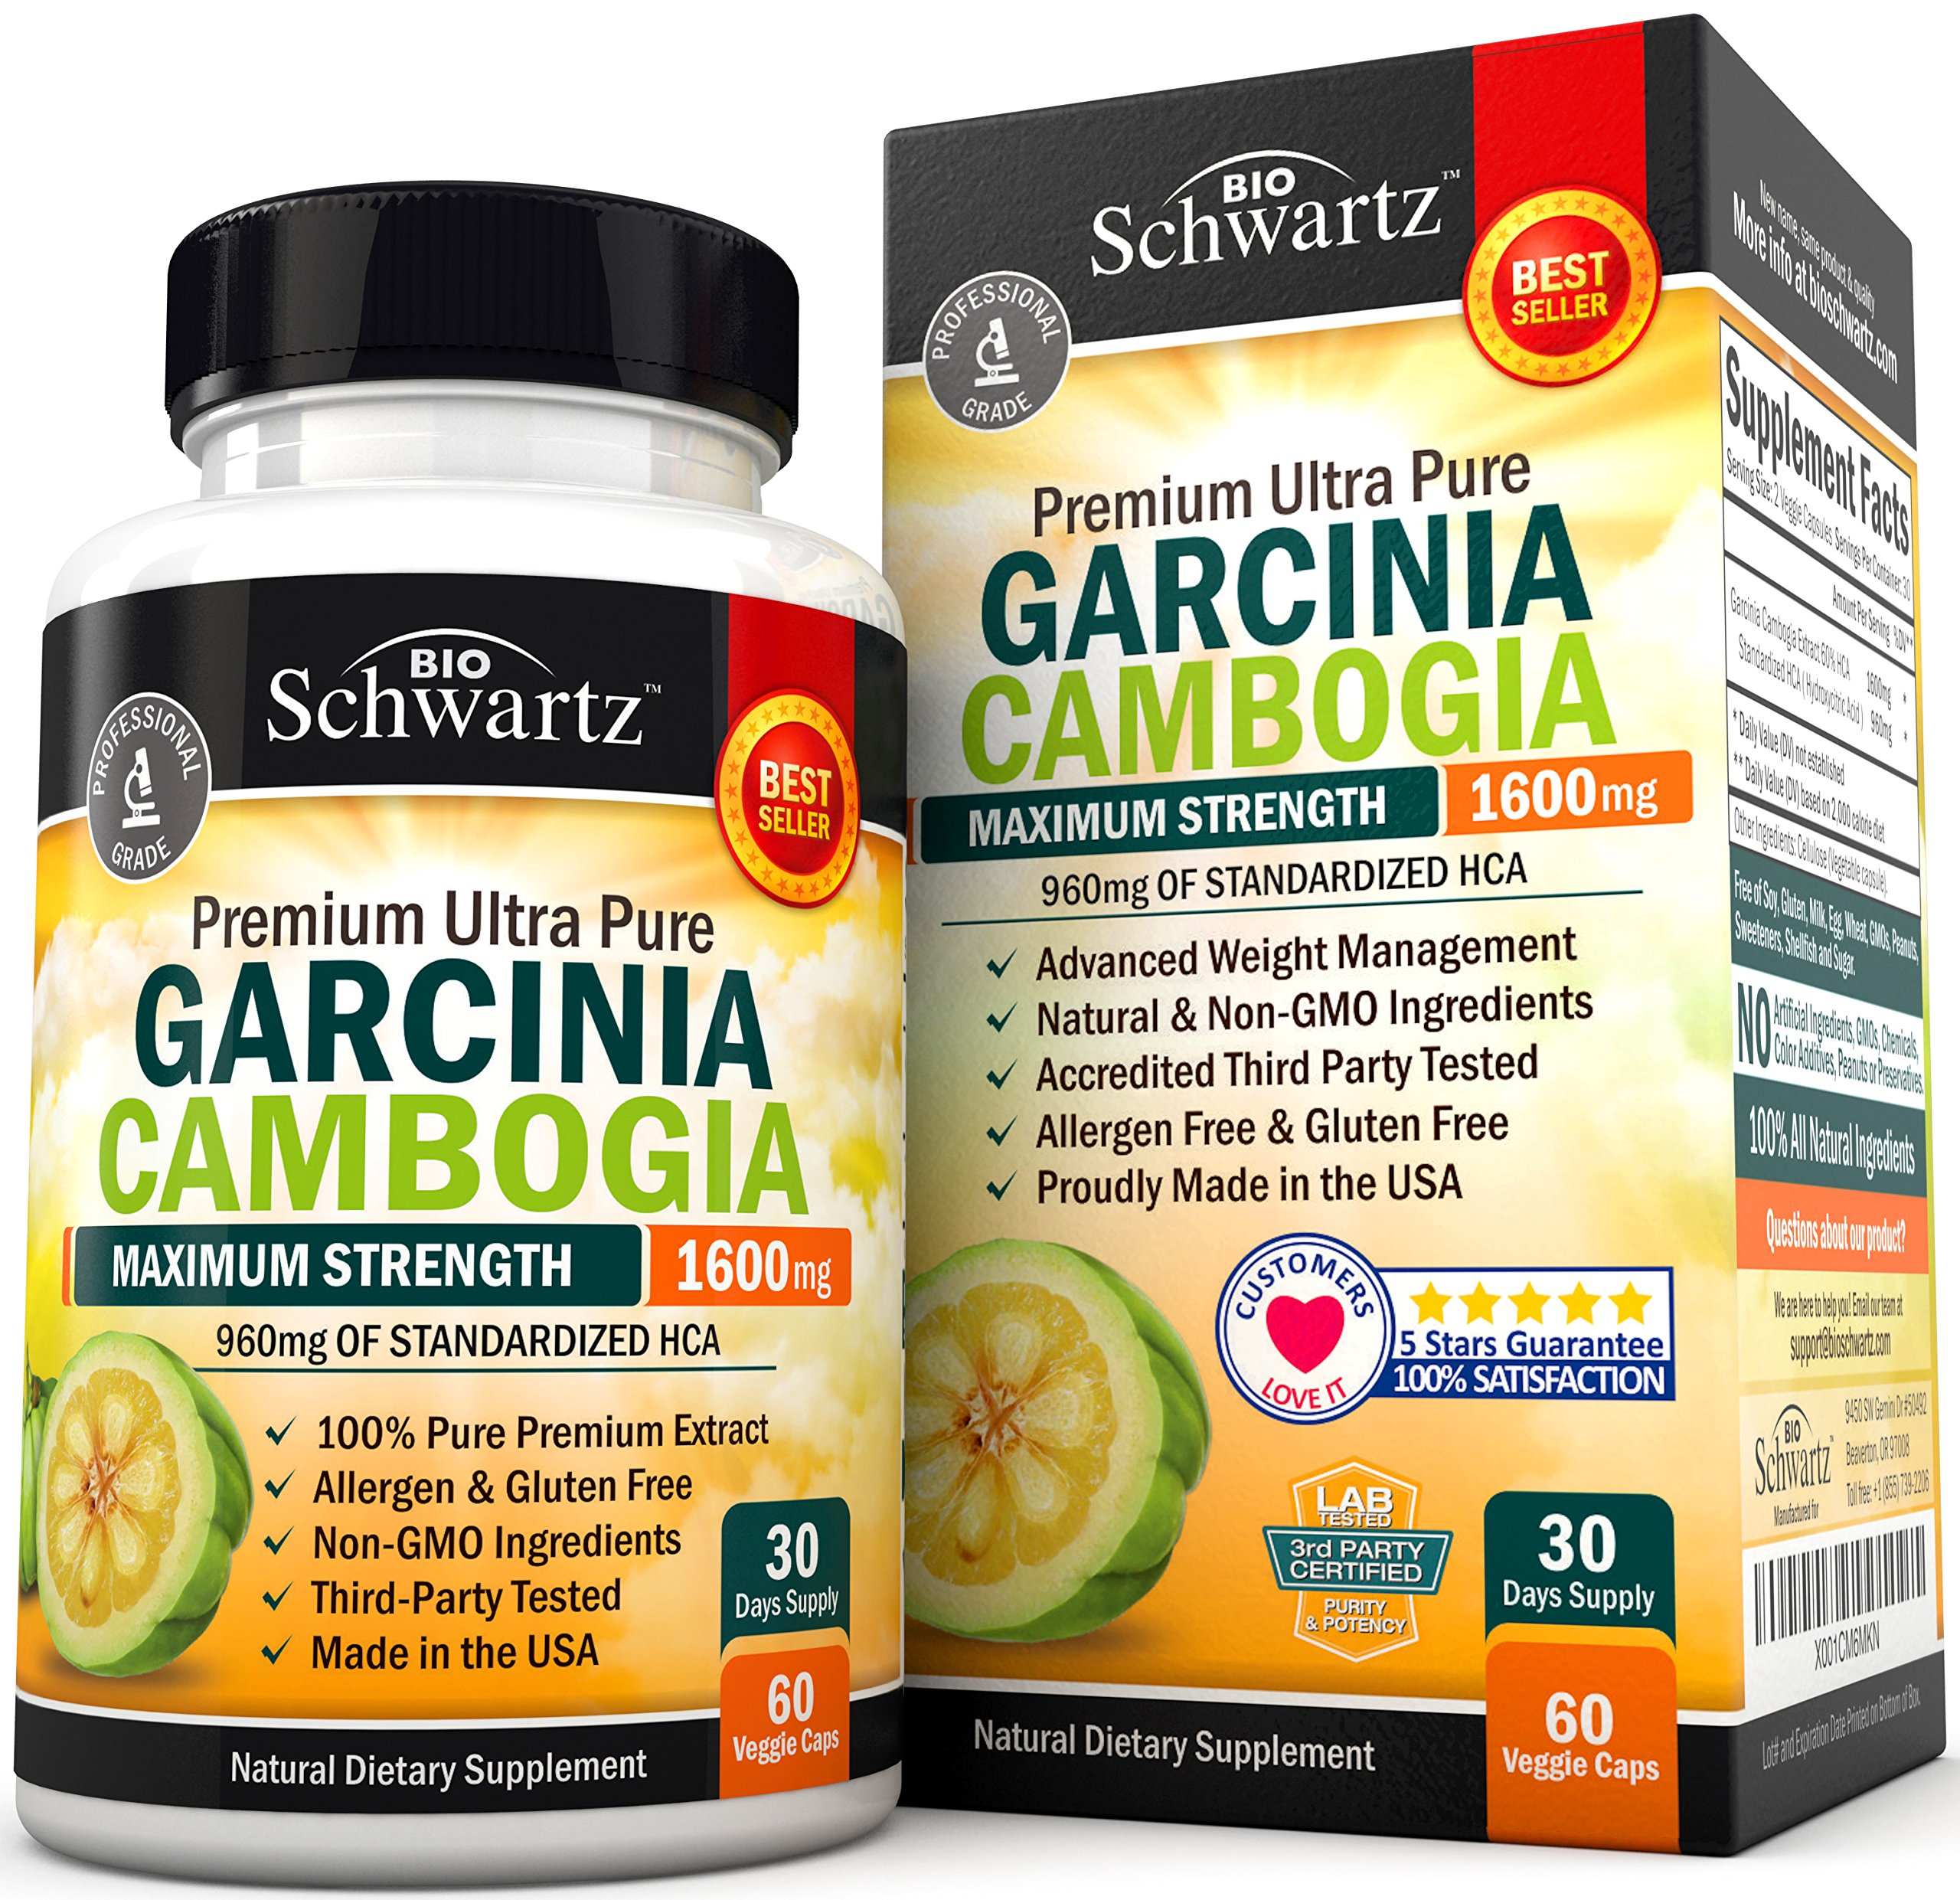 Garcinia Cambogia Pure Extract 1600mg with 960mg HCA. Fast Weight Loss & Fat Metabolism. Best Appetite Suppressant, Extreme Carb Blocker & Fat Burner for Women & Men. Garcinia Cambogia Premium Pills by BioSchwartz